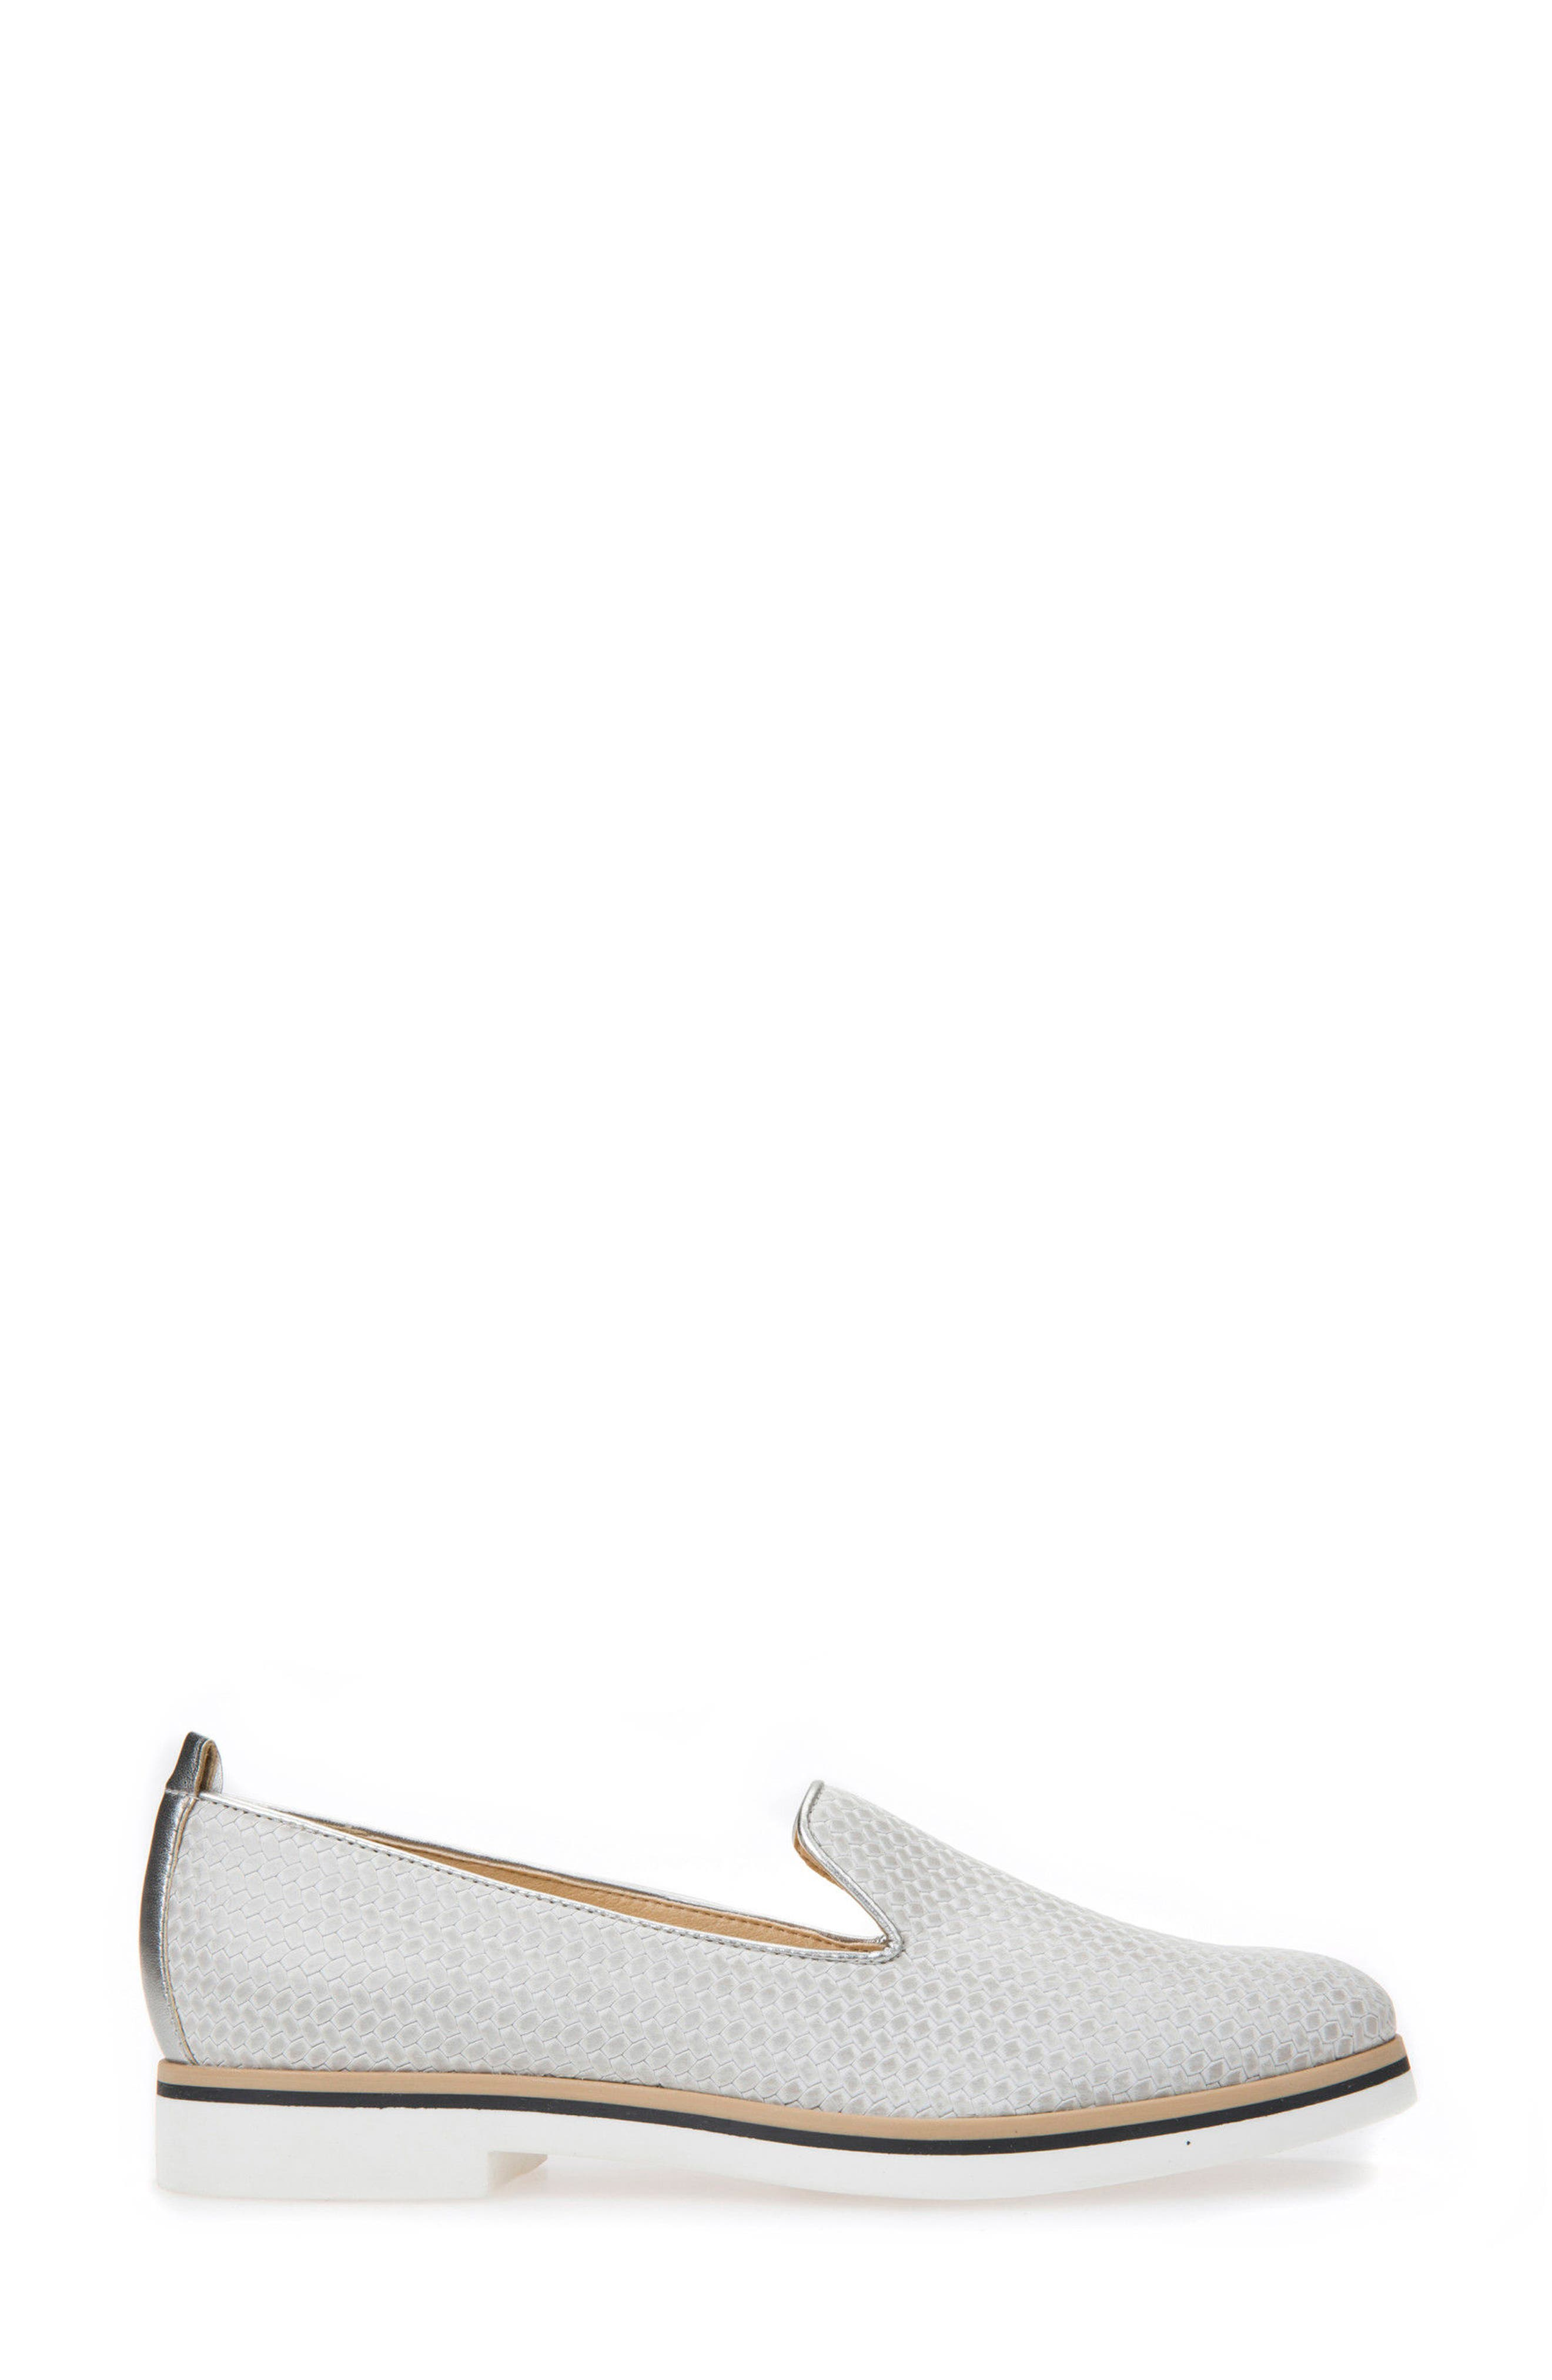 Janalee Woven Loafer,                             Alternate thumbnail 3, color,                             Light Grey Leather